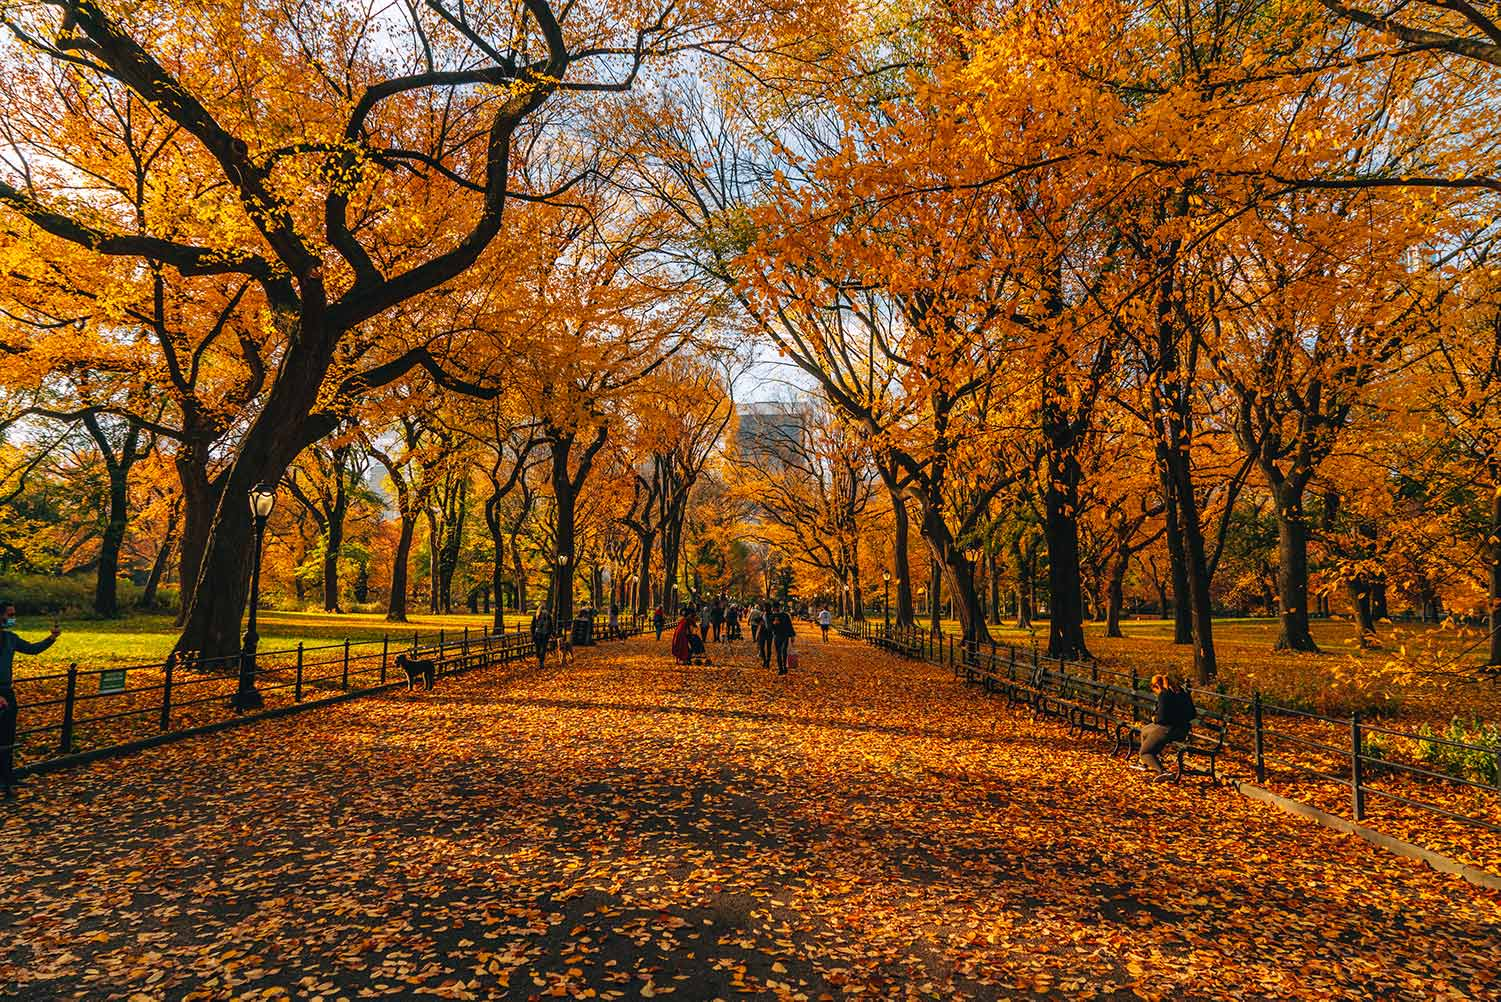 Fall foliage in full effect at The Mall at Central Park in NYC. Photo by Kristi Hemric (Instagram: @khemric).